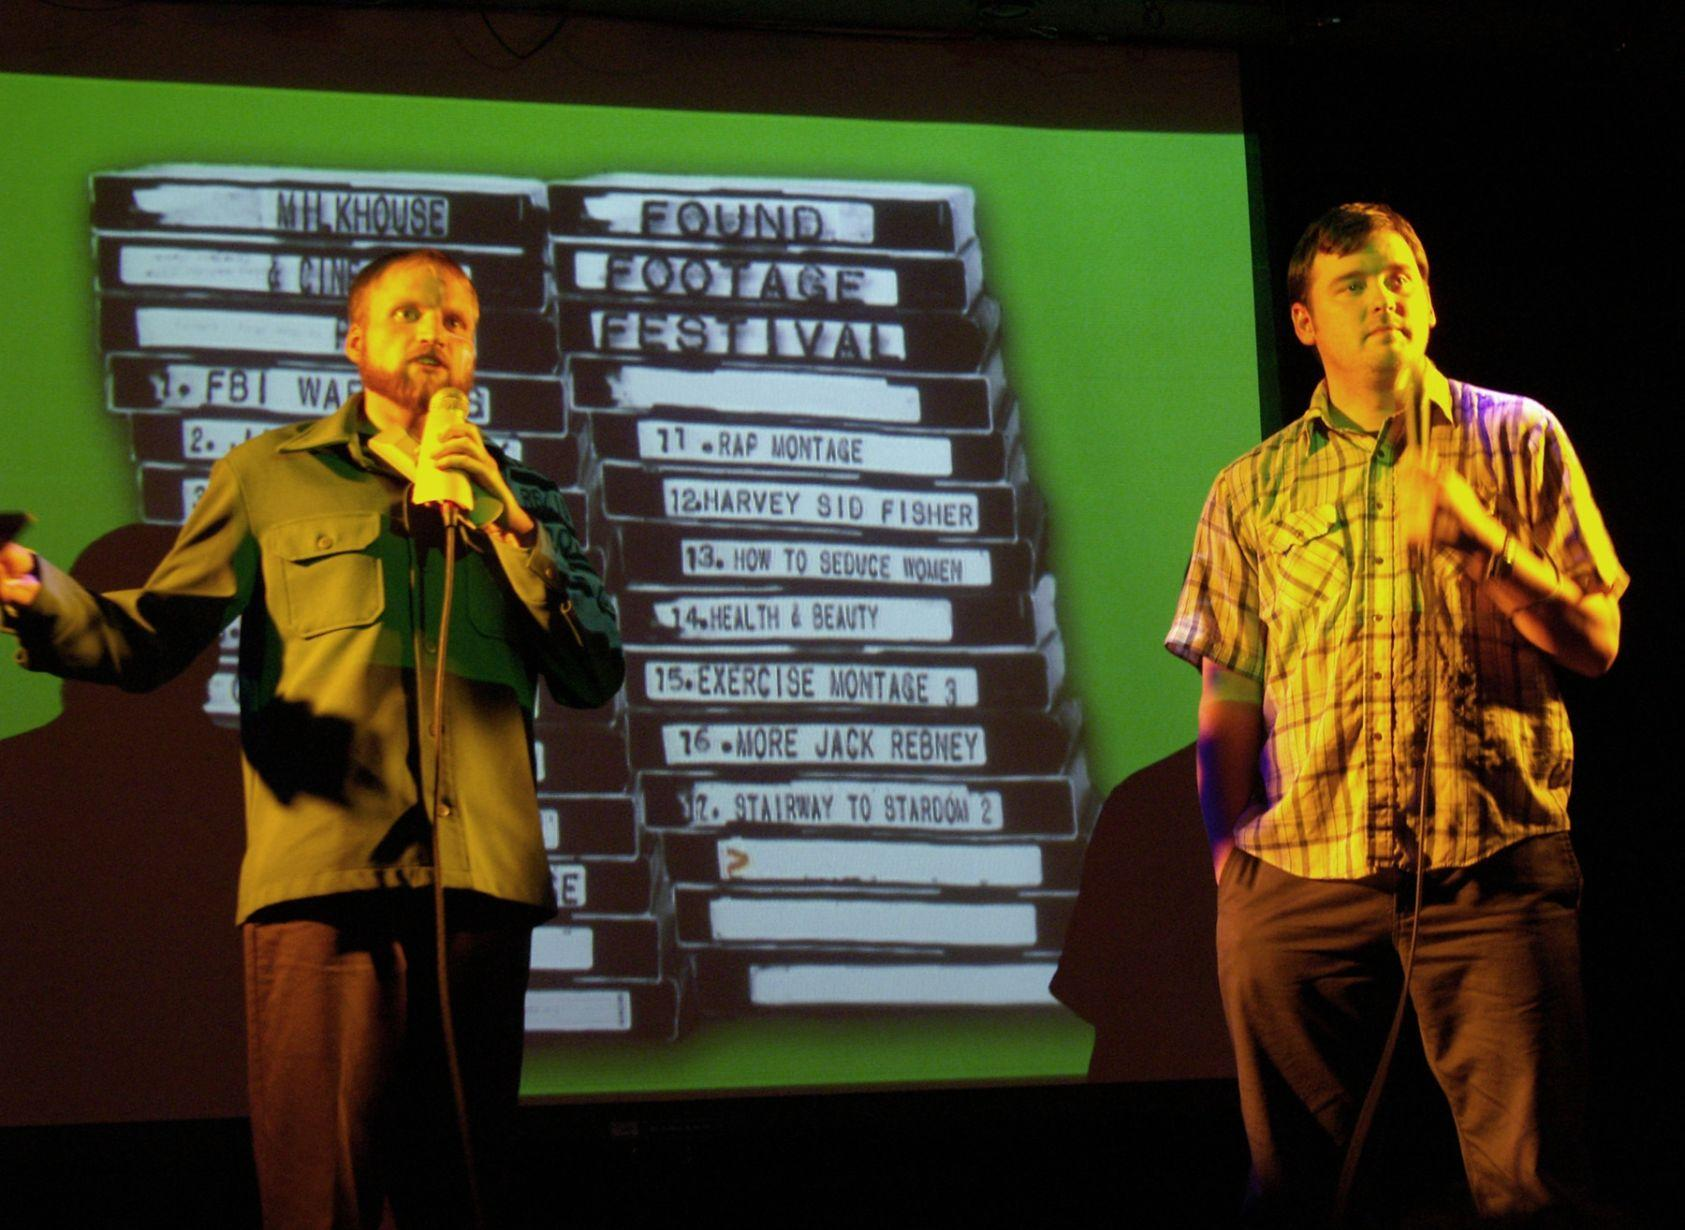 The hosts, Nick Prueher and Joe Pickett, open the Found Footage Festival, where they share VHS videos they find and collect.